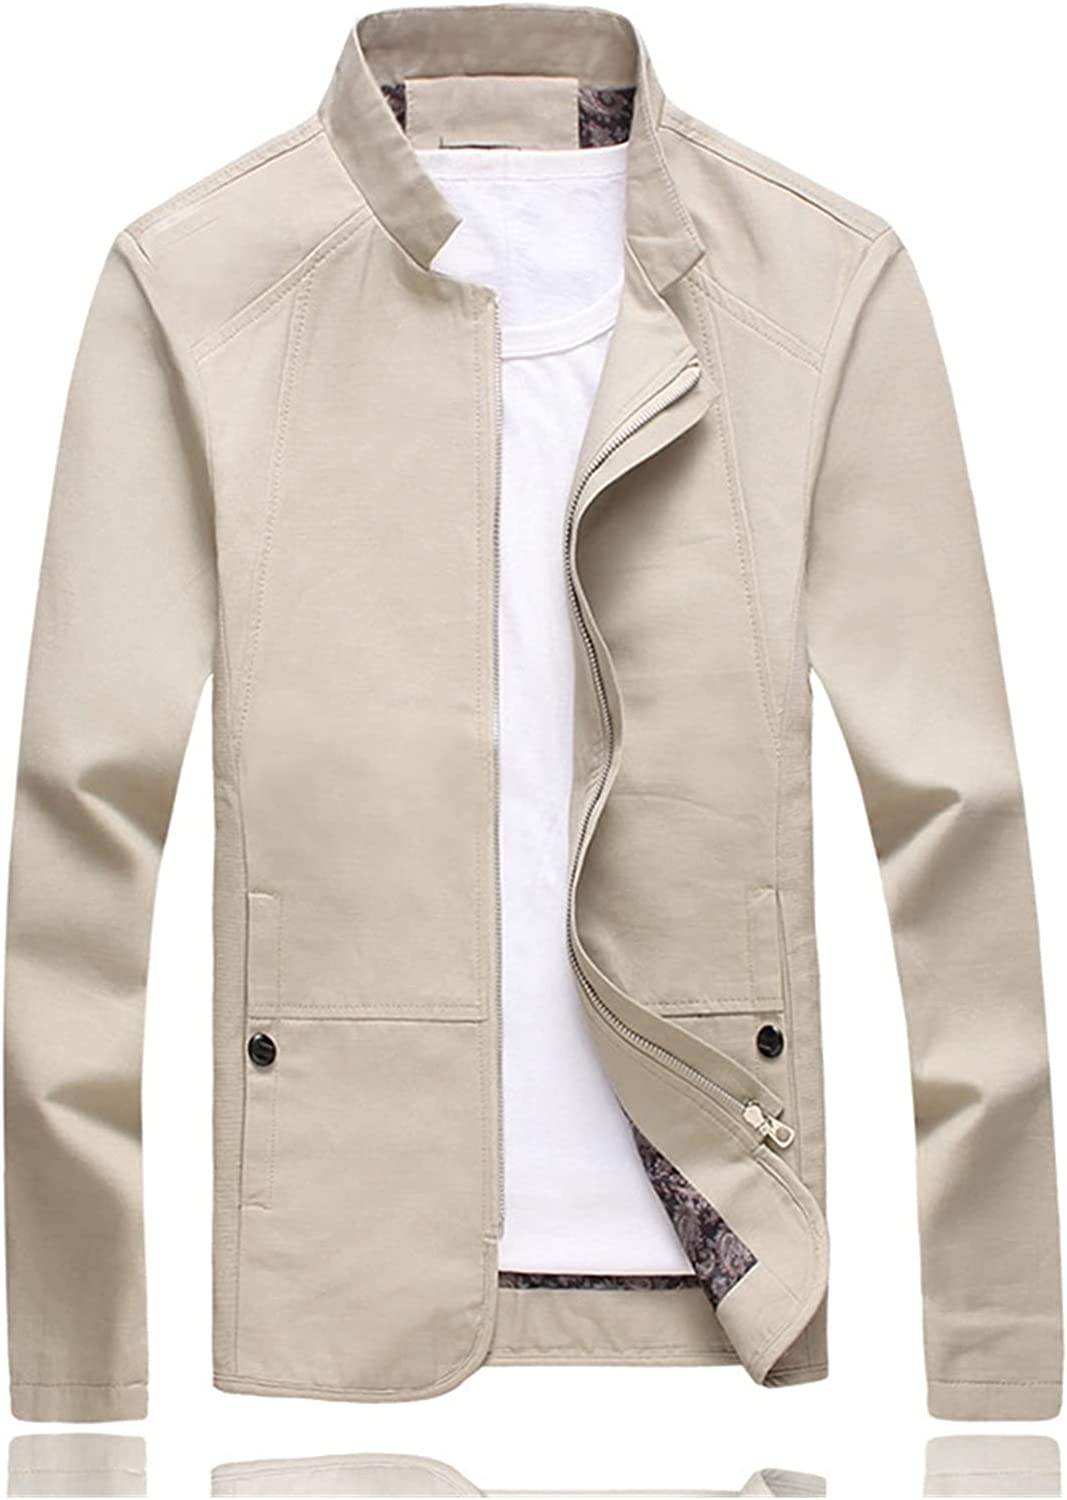 Jacket New Men Excellent Fashion NEW before selling ☆ Slim Casual Sportswear Mens